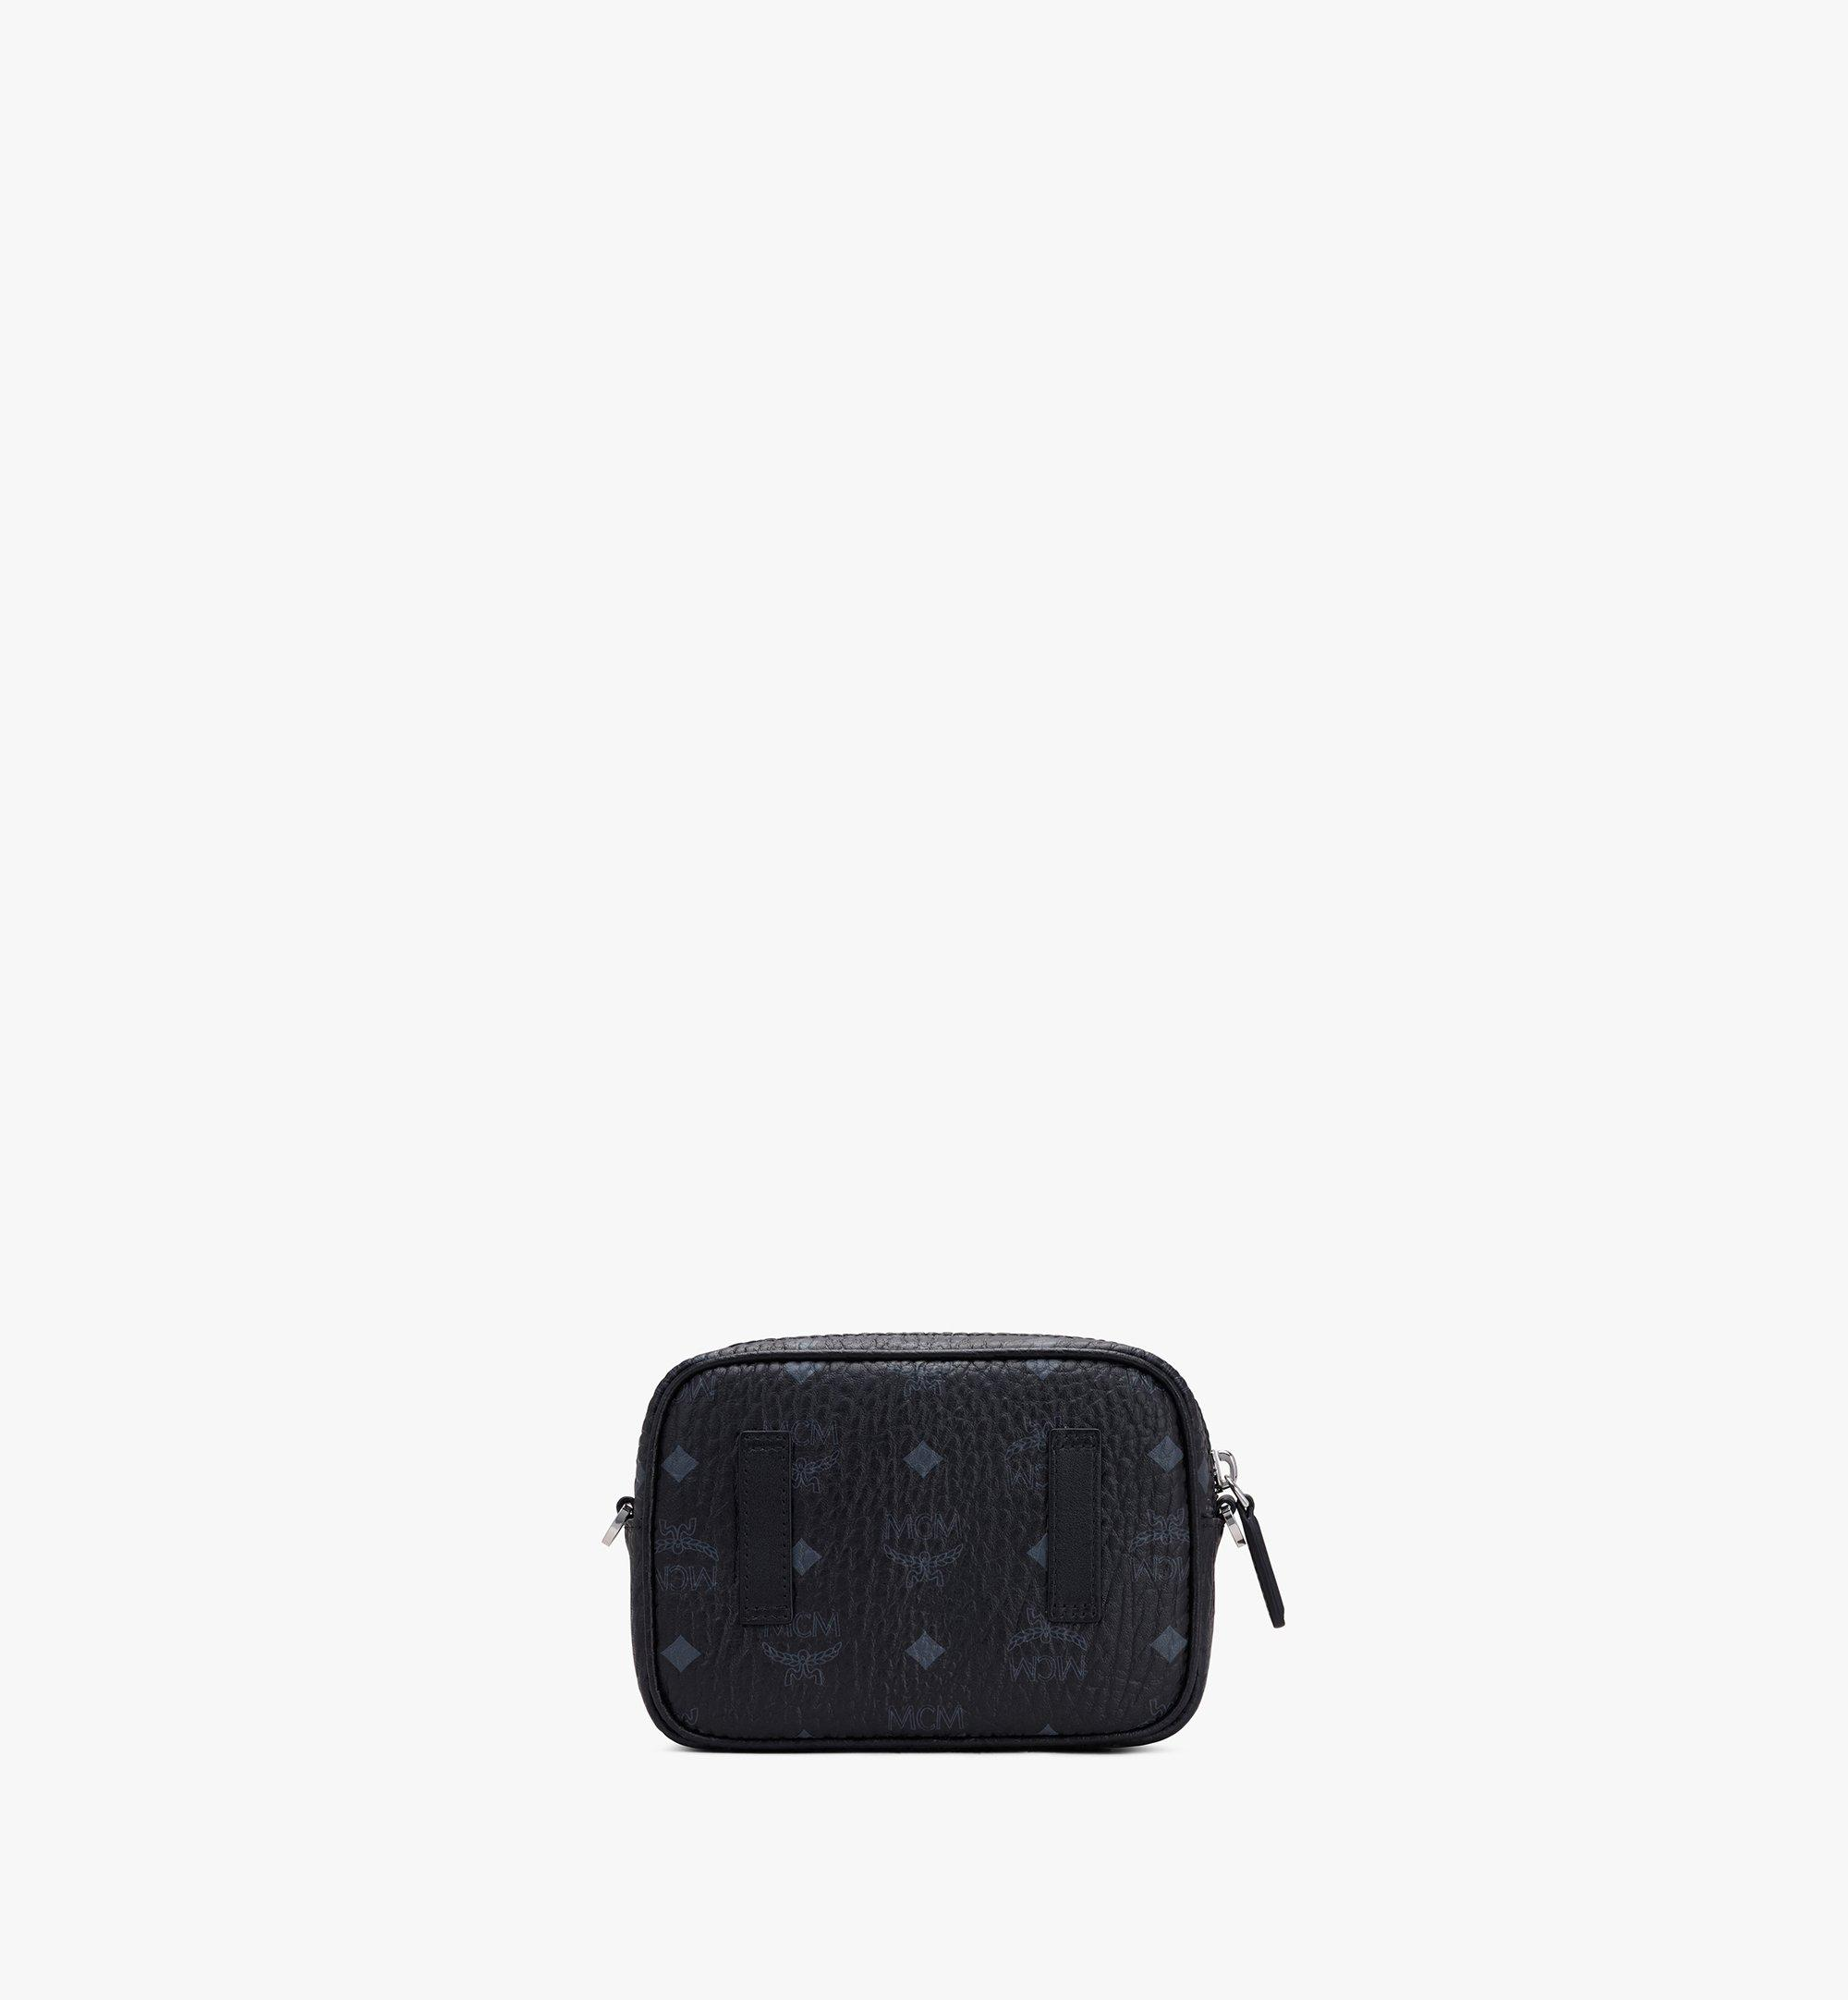 MCM Klassik Crossbody in Visetos Black MMRASKC08BK001 Alternate View 2